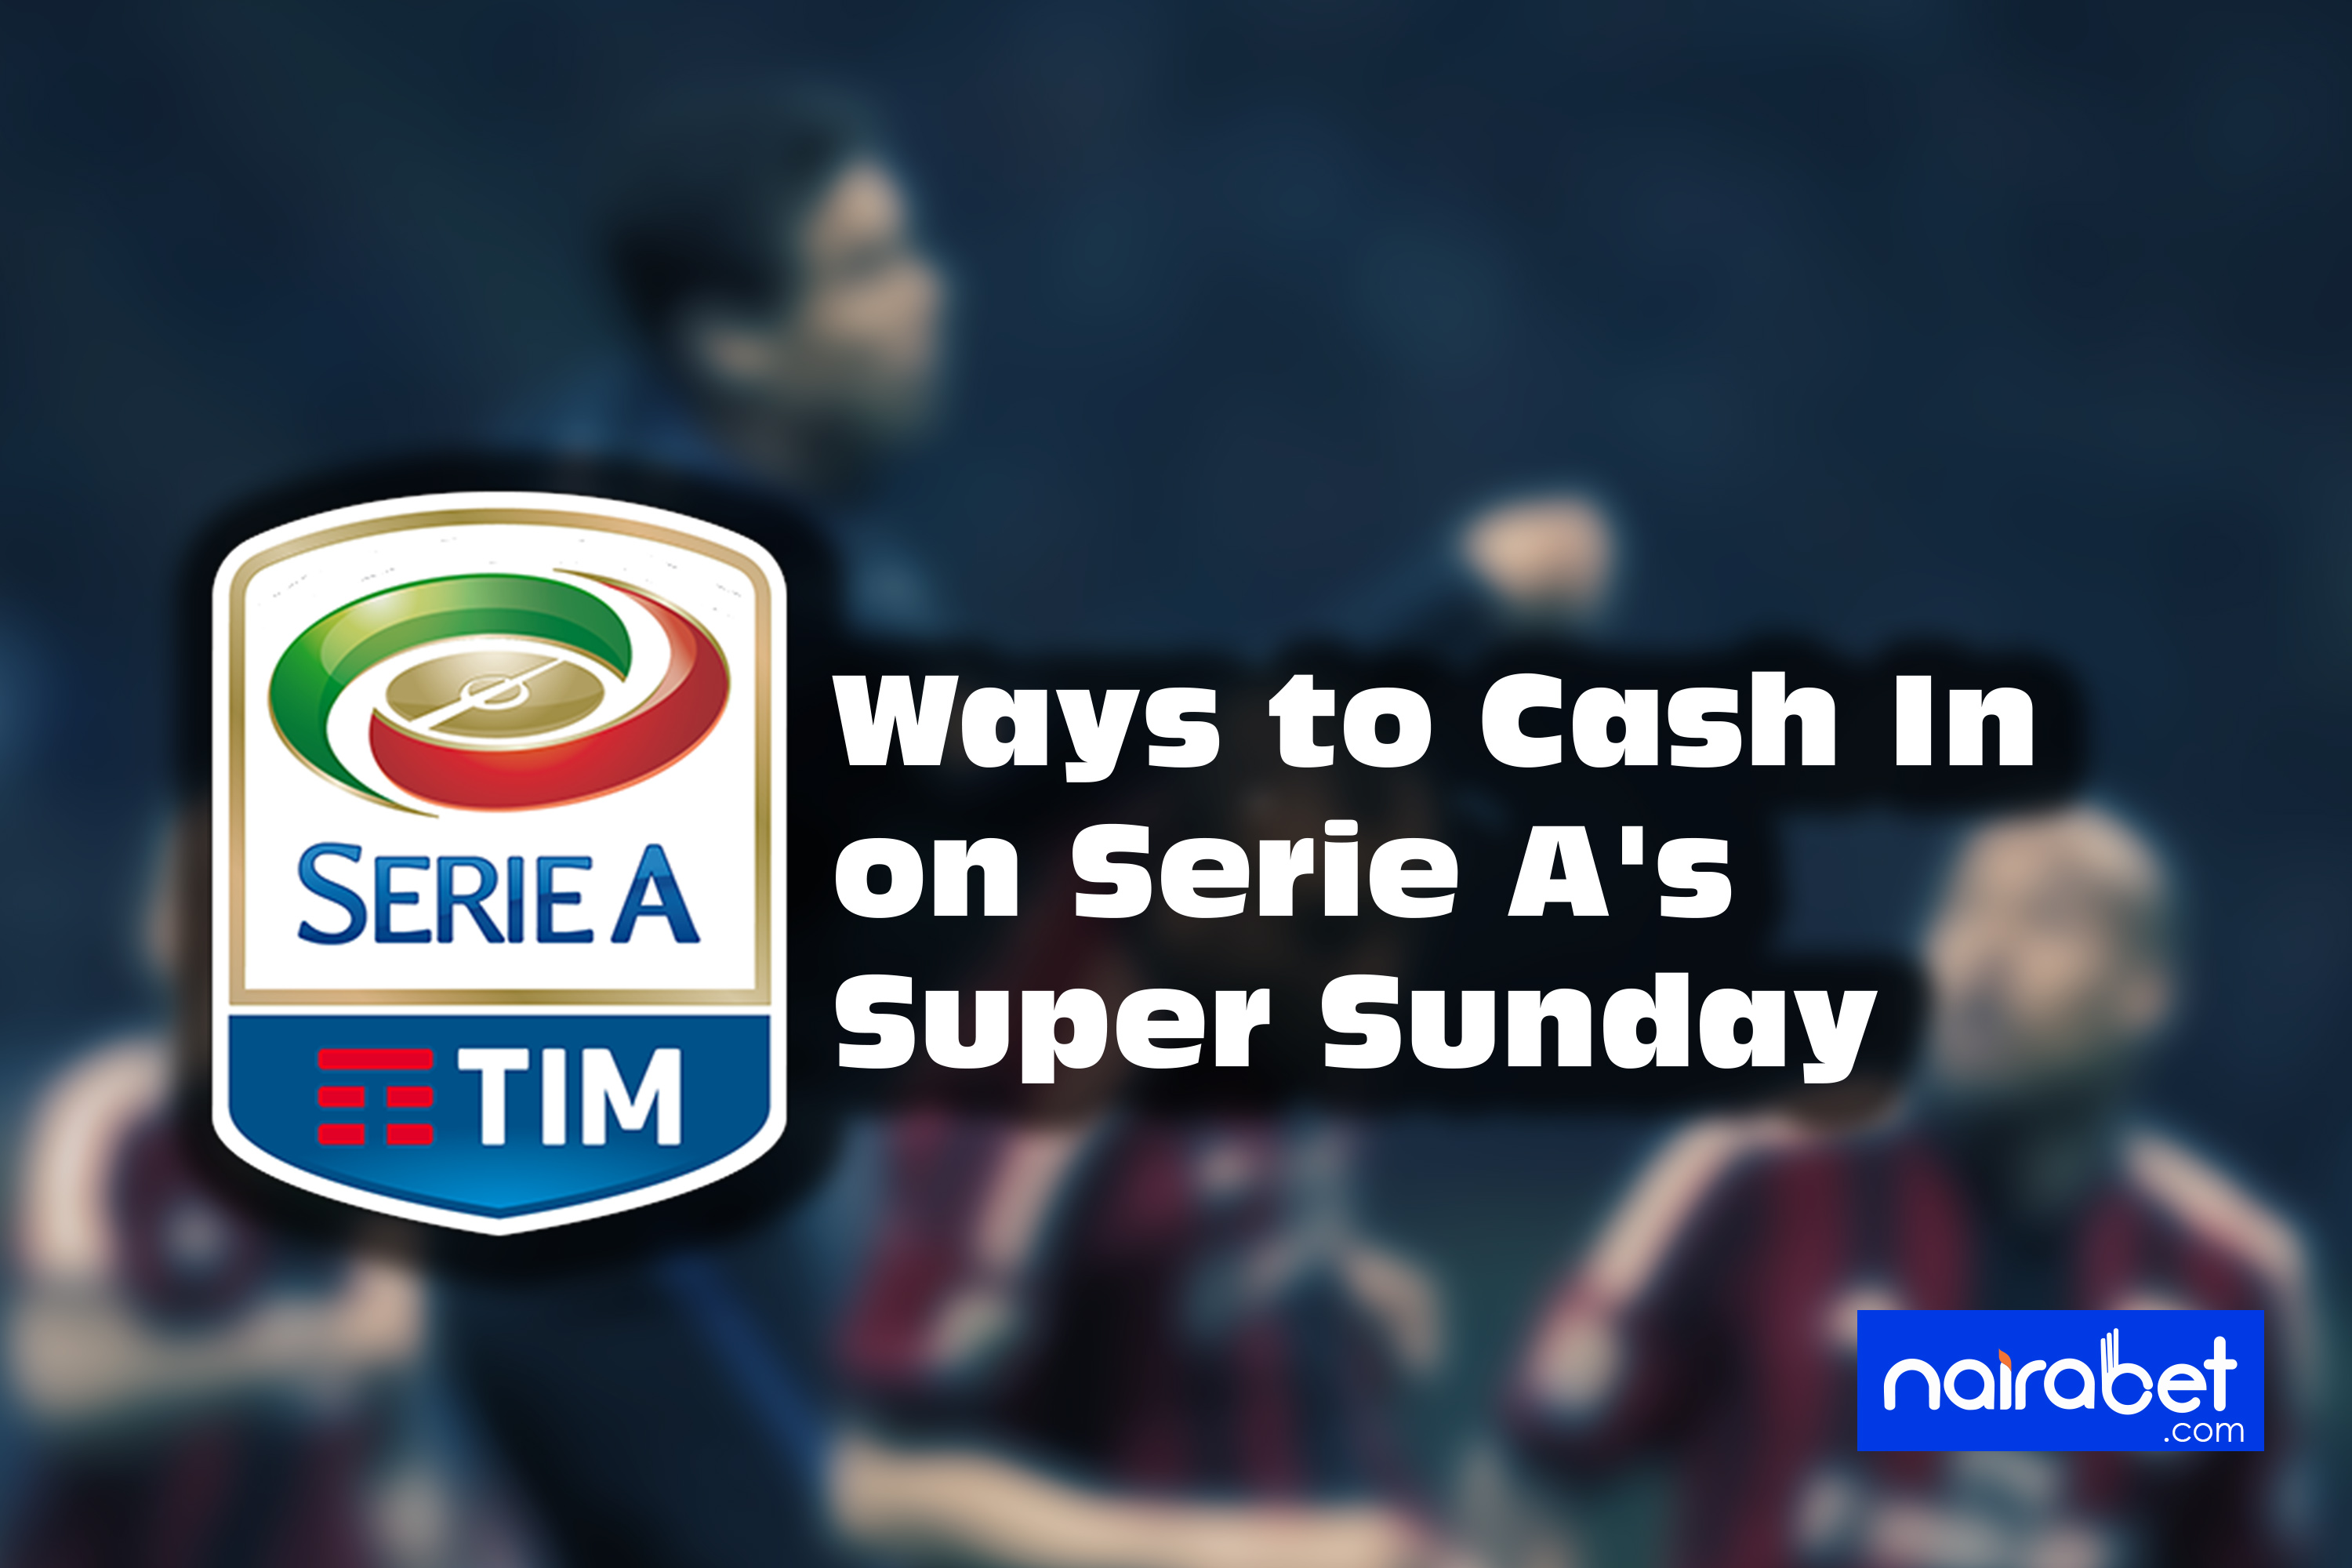 serie a super sunday